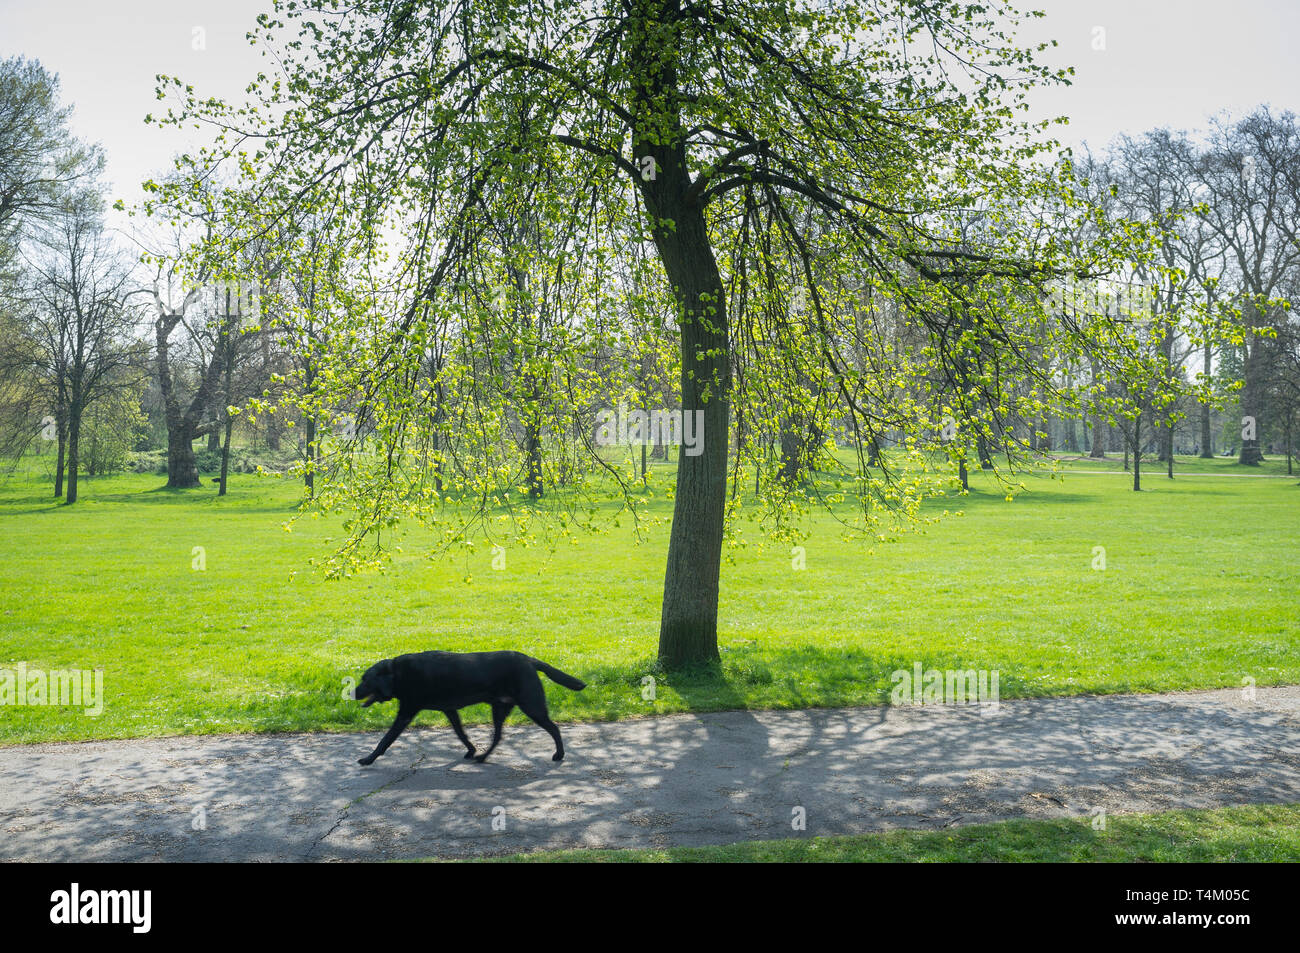 A labrador walks by the fresh green foliage on a tree in Hyde Park, London in Spring - Stock Image